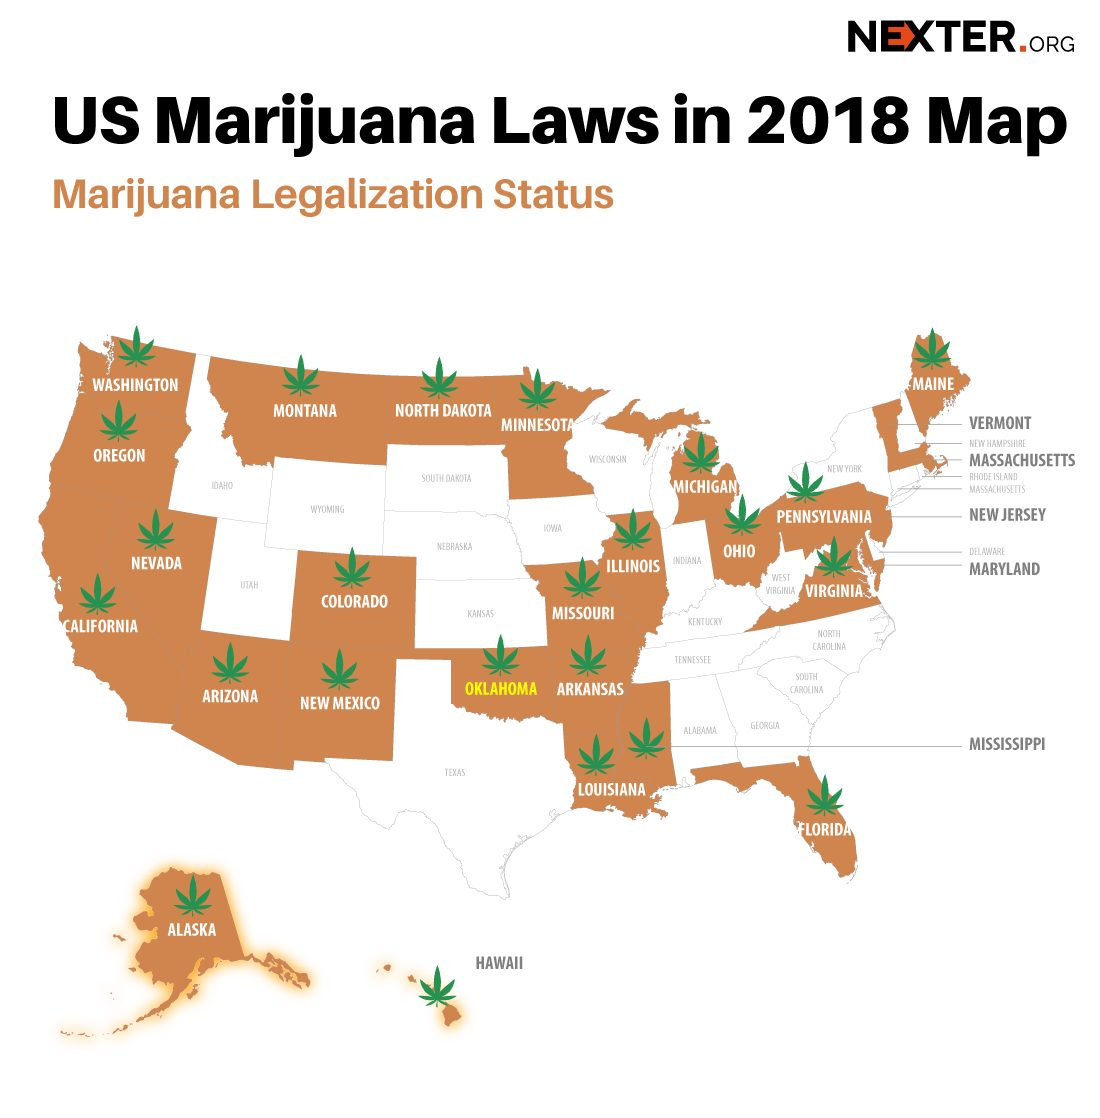 Oklahoma Approves Medical Marijuana - See Map With All 30 USA States Where Cannabis Usage Is Allowed